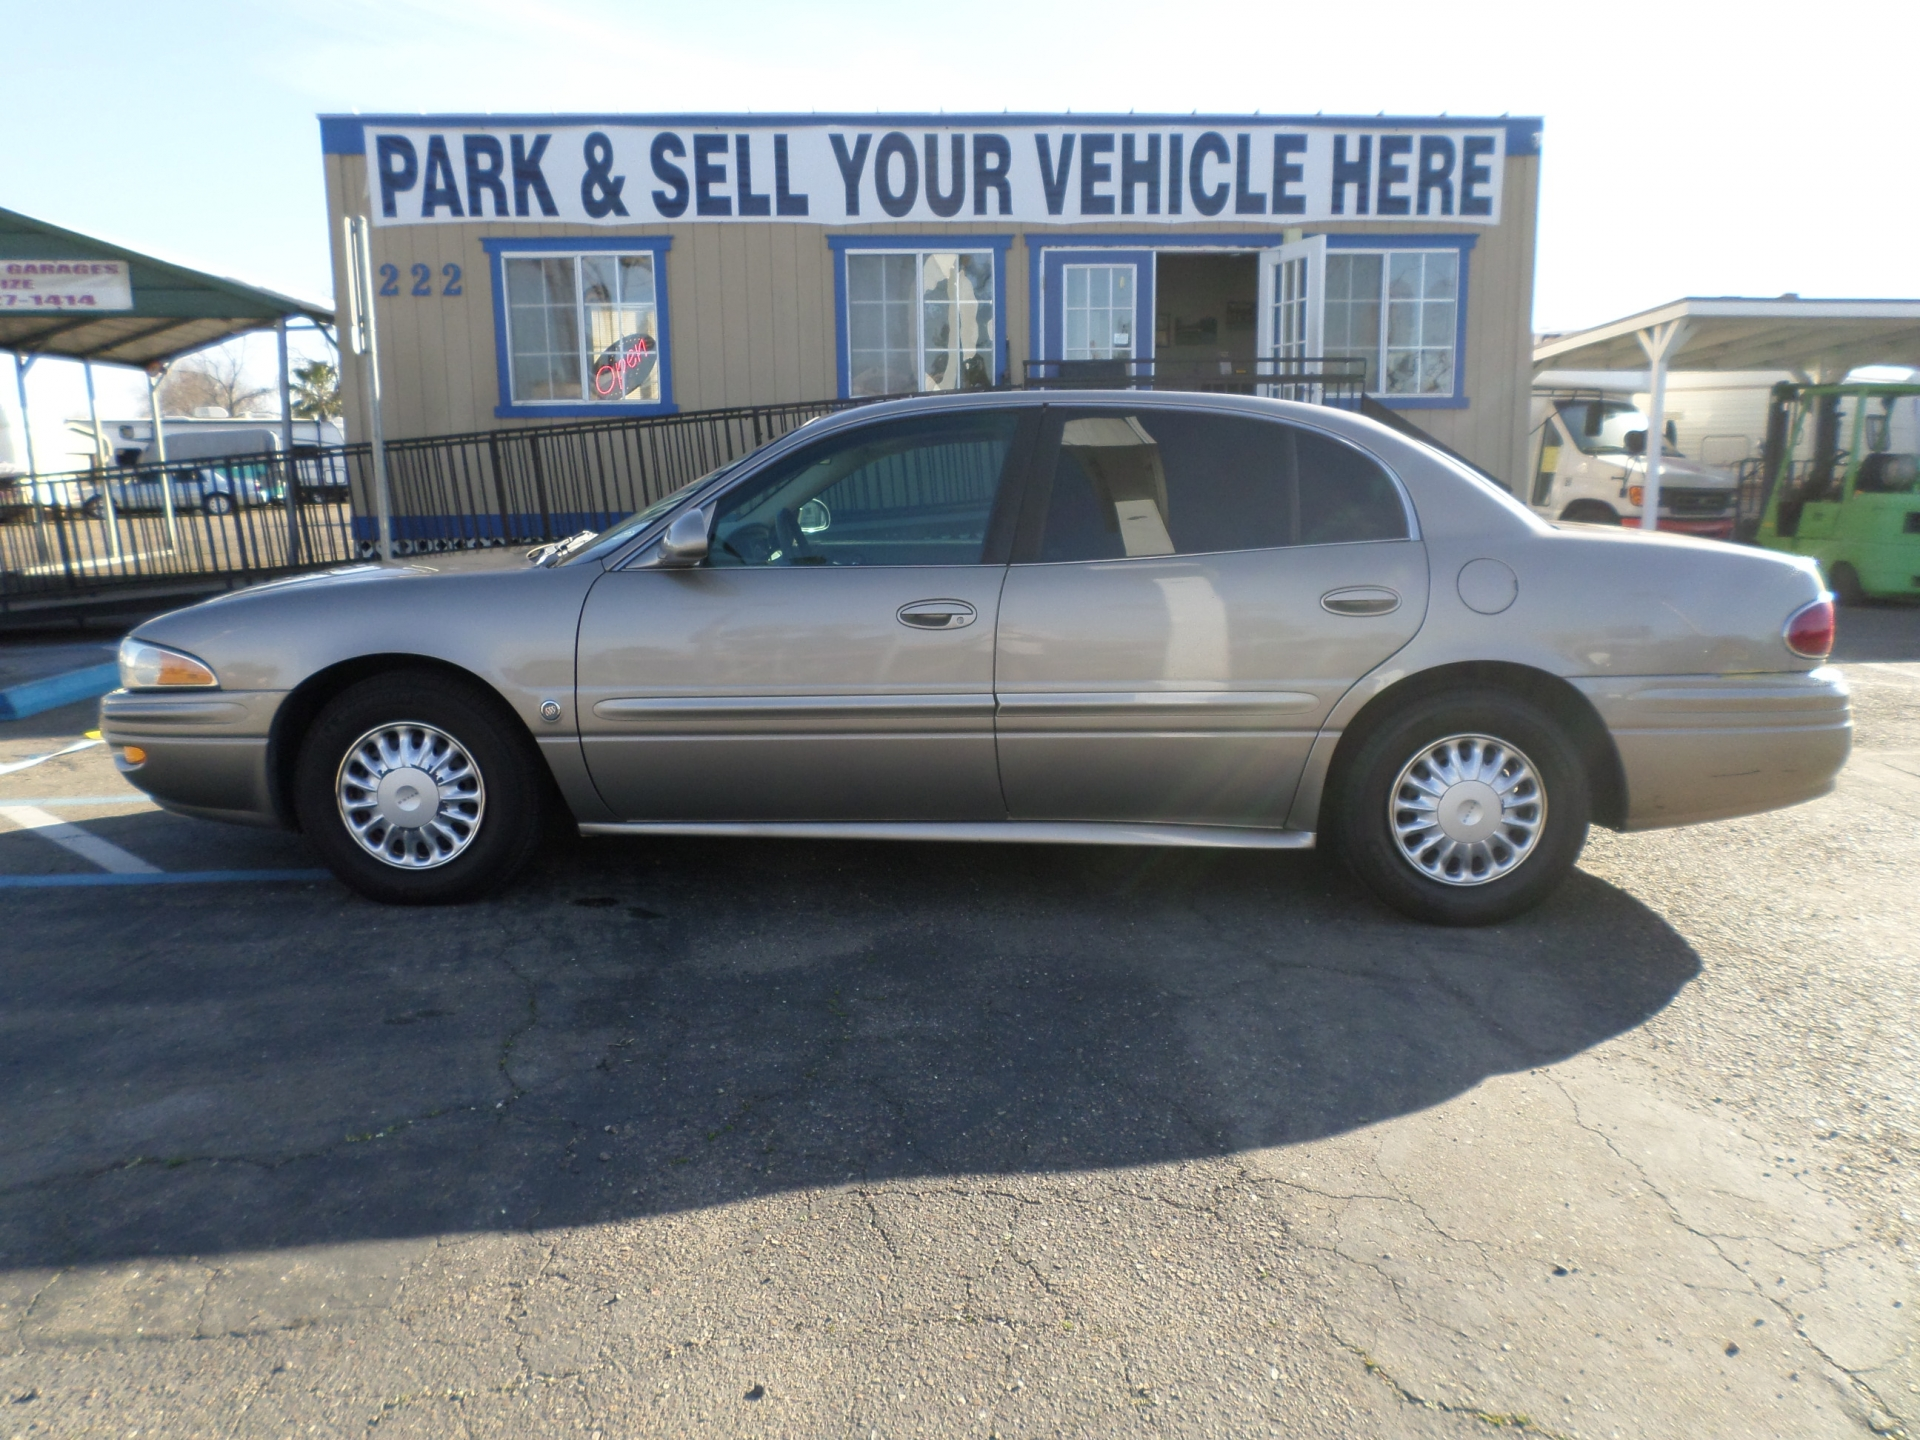 car for sale 2004 buick lesabre in lodi stockton ca lodi park and sell lodi park and sell